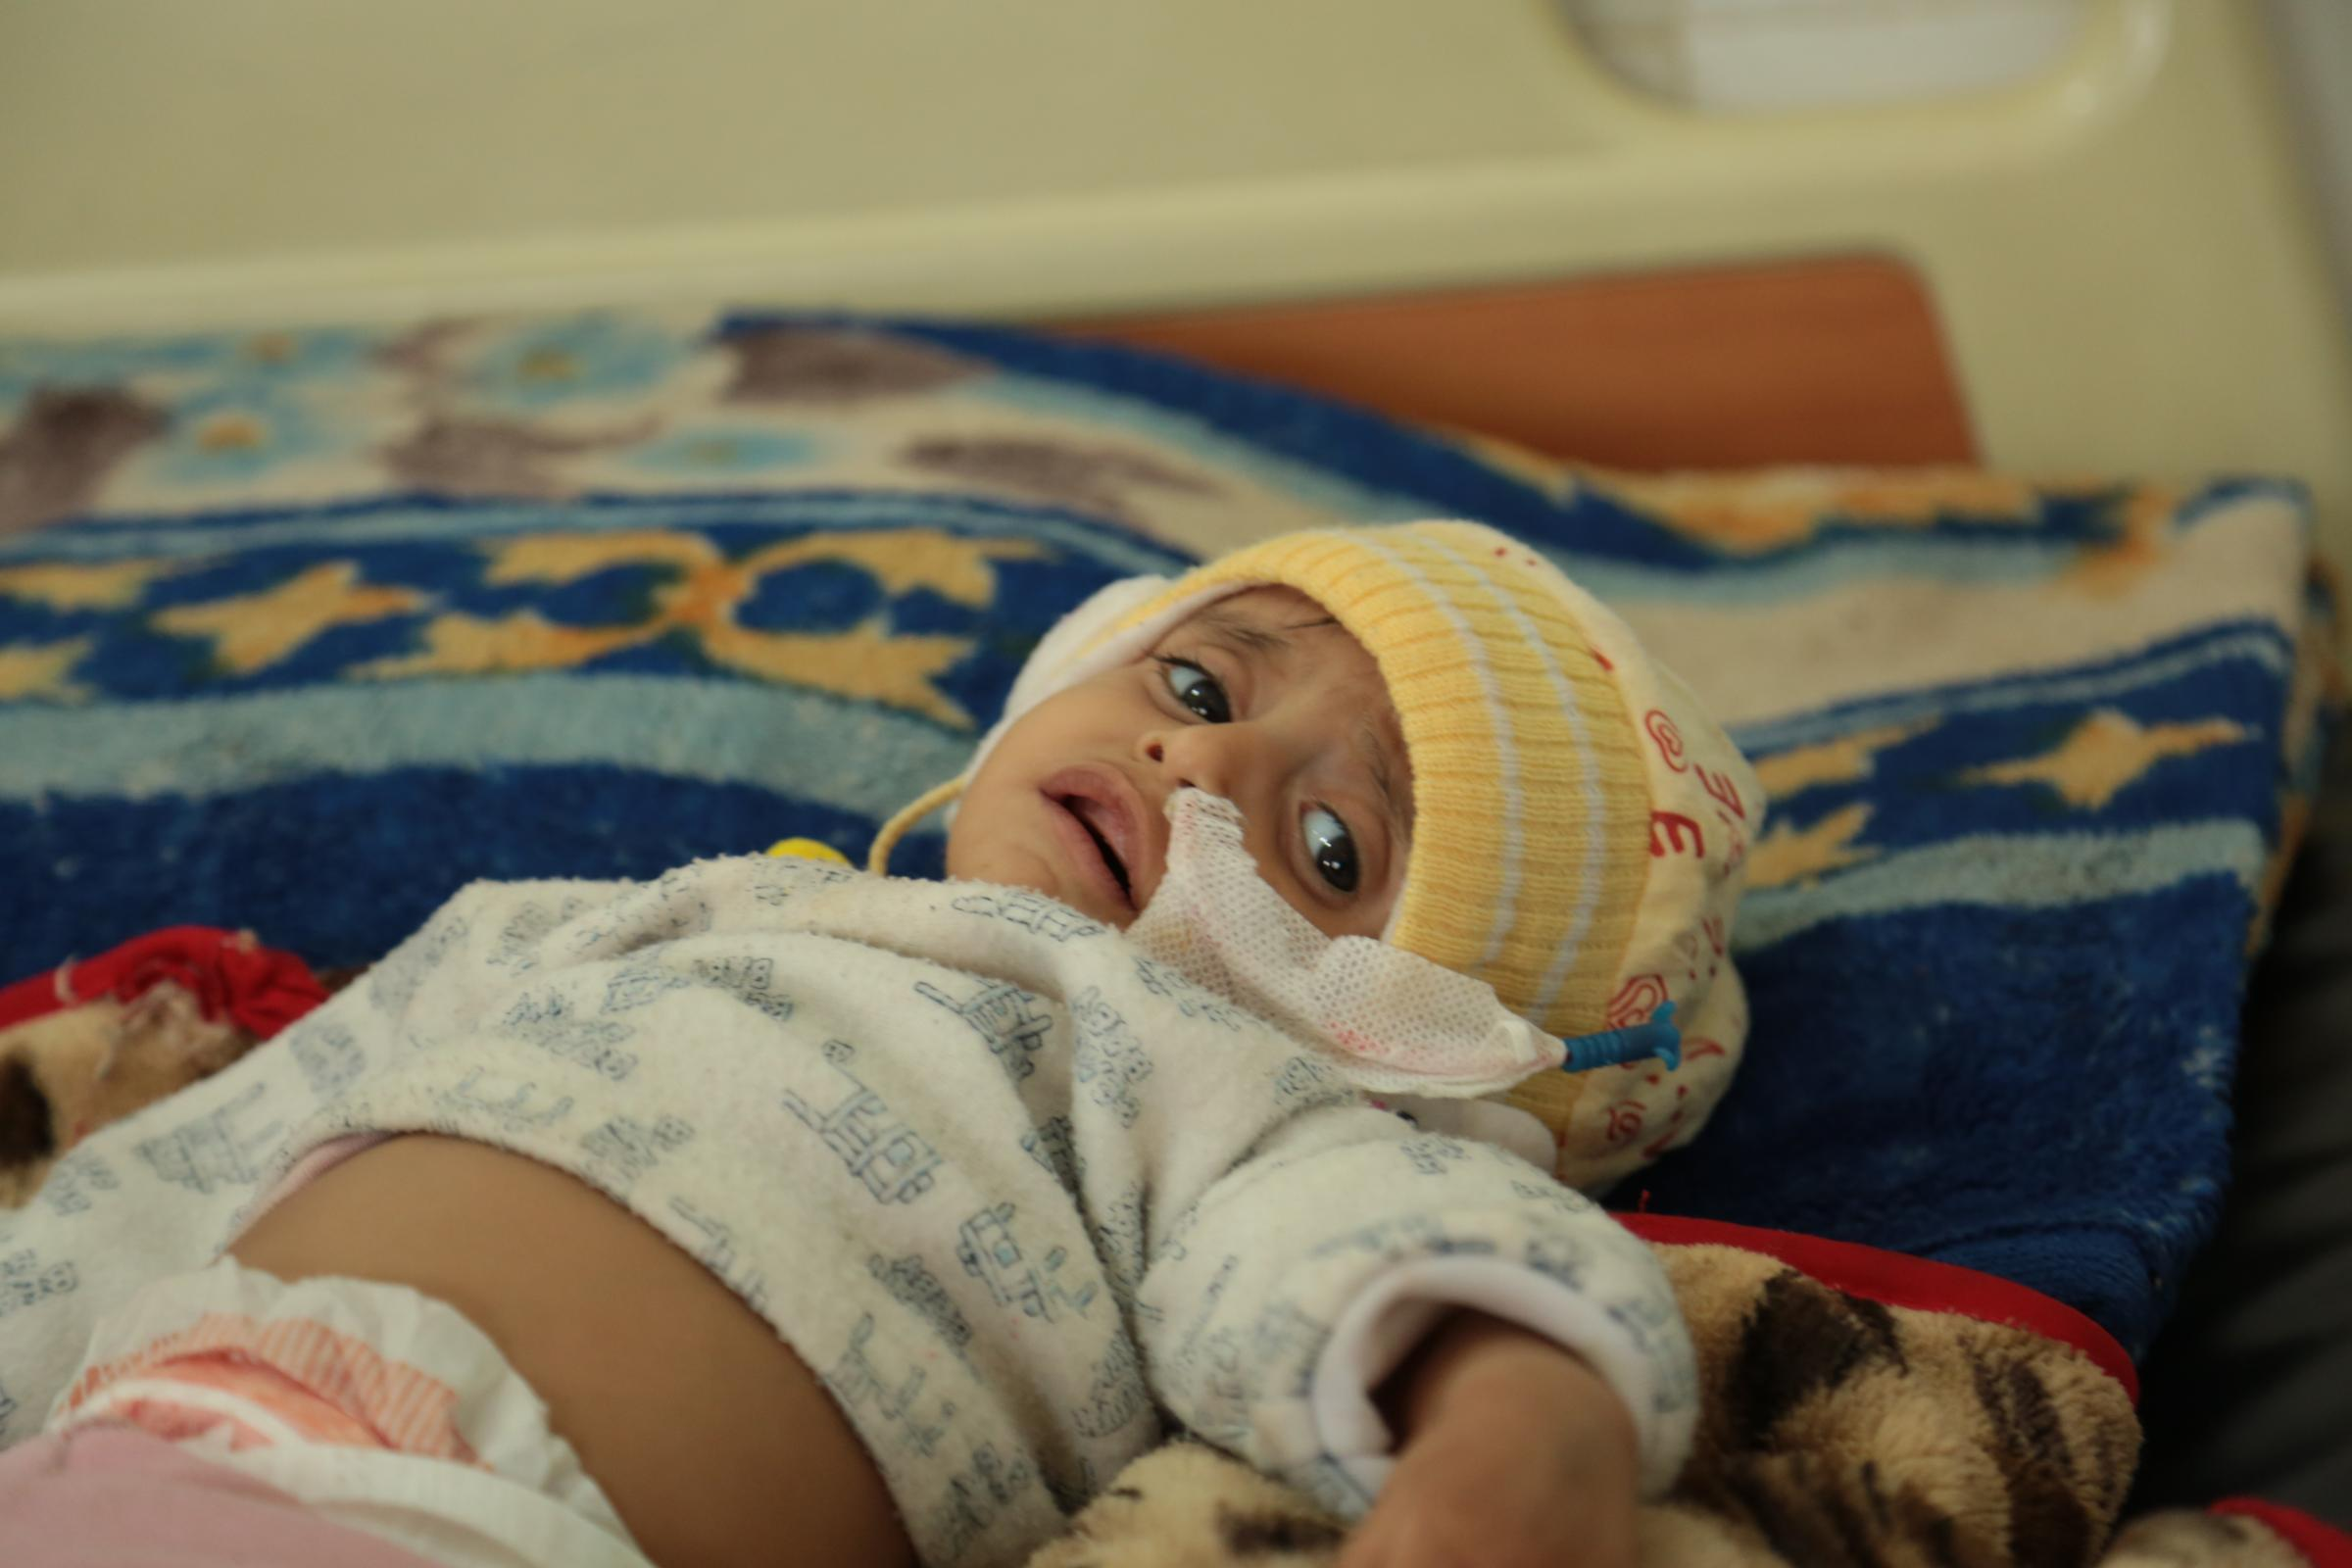 Yemen: the worst humanitarian crisis in the world today © Save the Children